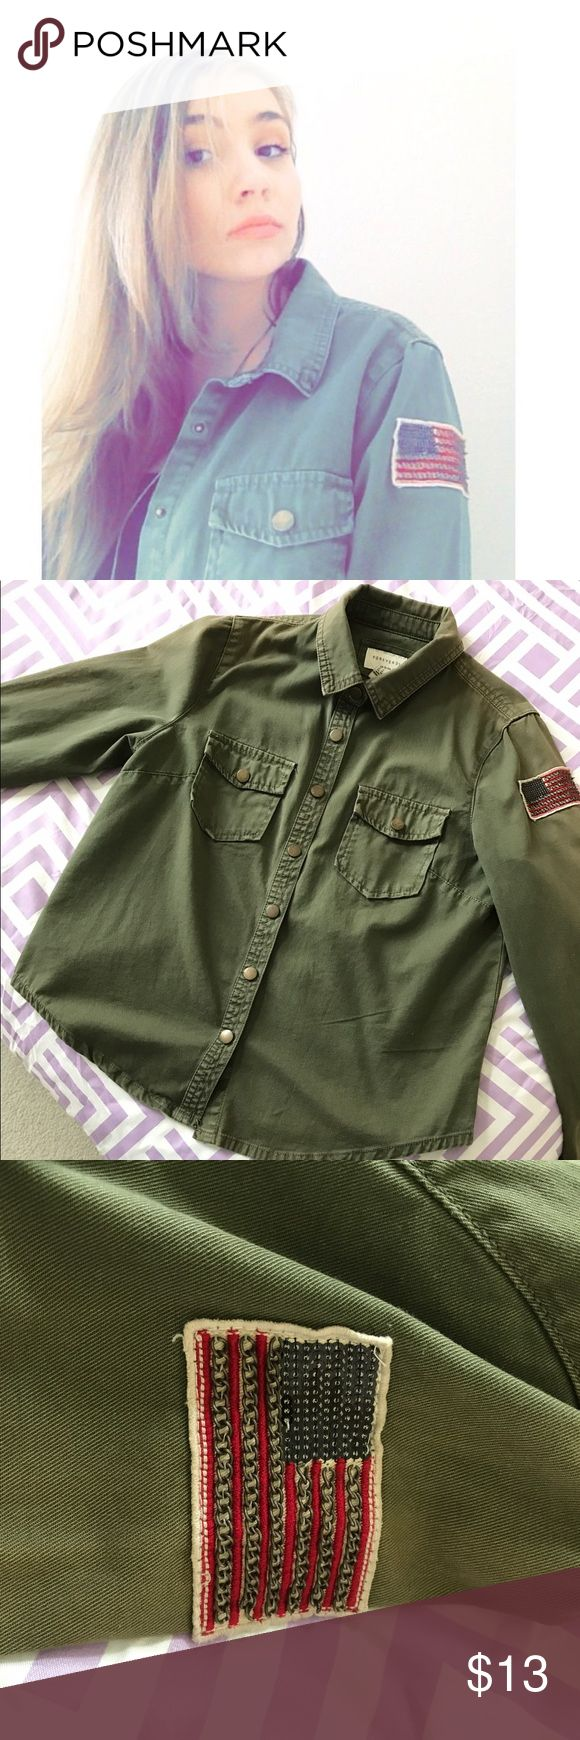 Army Style Button Down Utility Jacket This cute army style utility button down shirt has two pockets and the cutest American flag decoration on the left arm. Lightly worn and can be used as a jacket when buttons are left open Forever 21 Tops Button Down Shirts